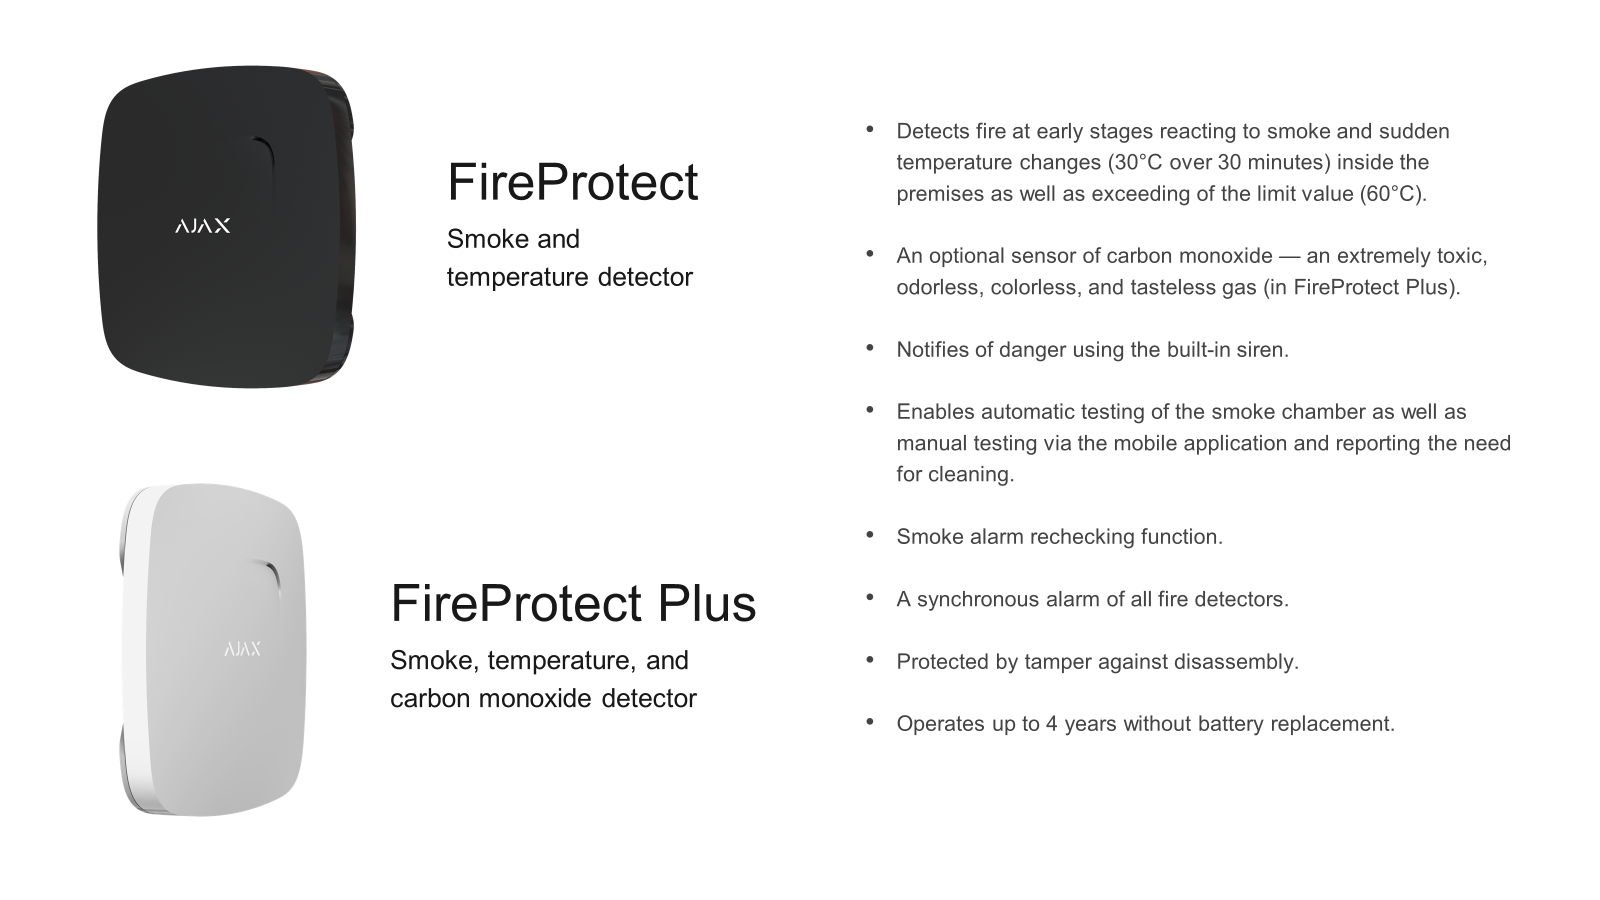 Ajax Fire Protect Plus